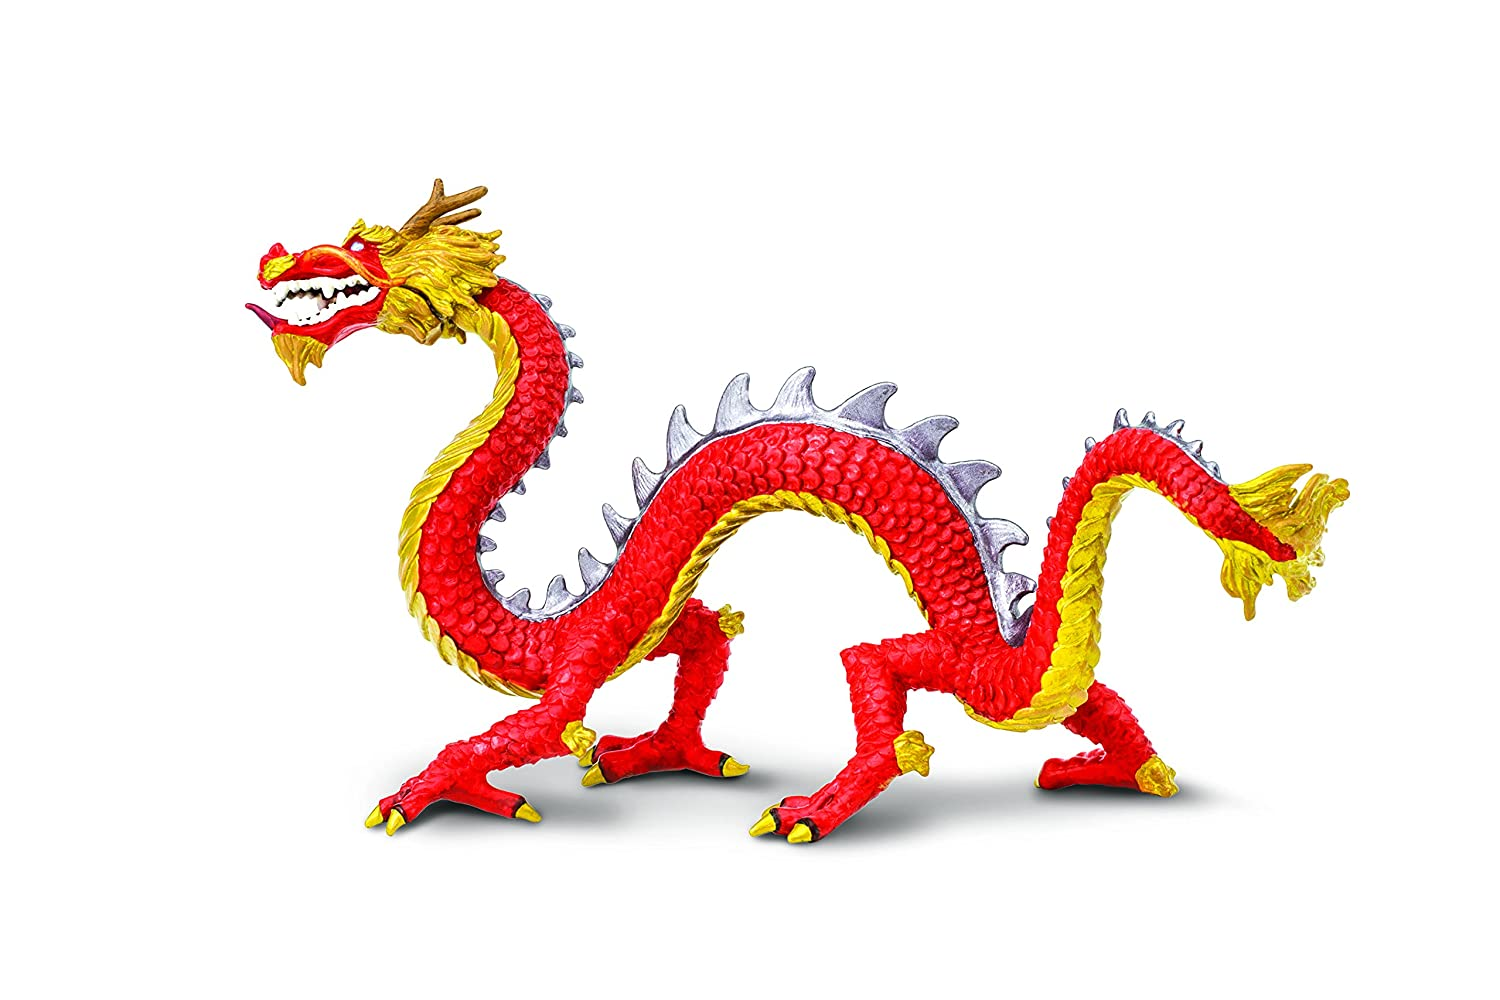 Buy Safari Ltd Horned Chinese Dragon Online at Low Prices in